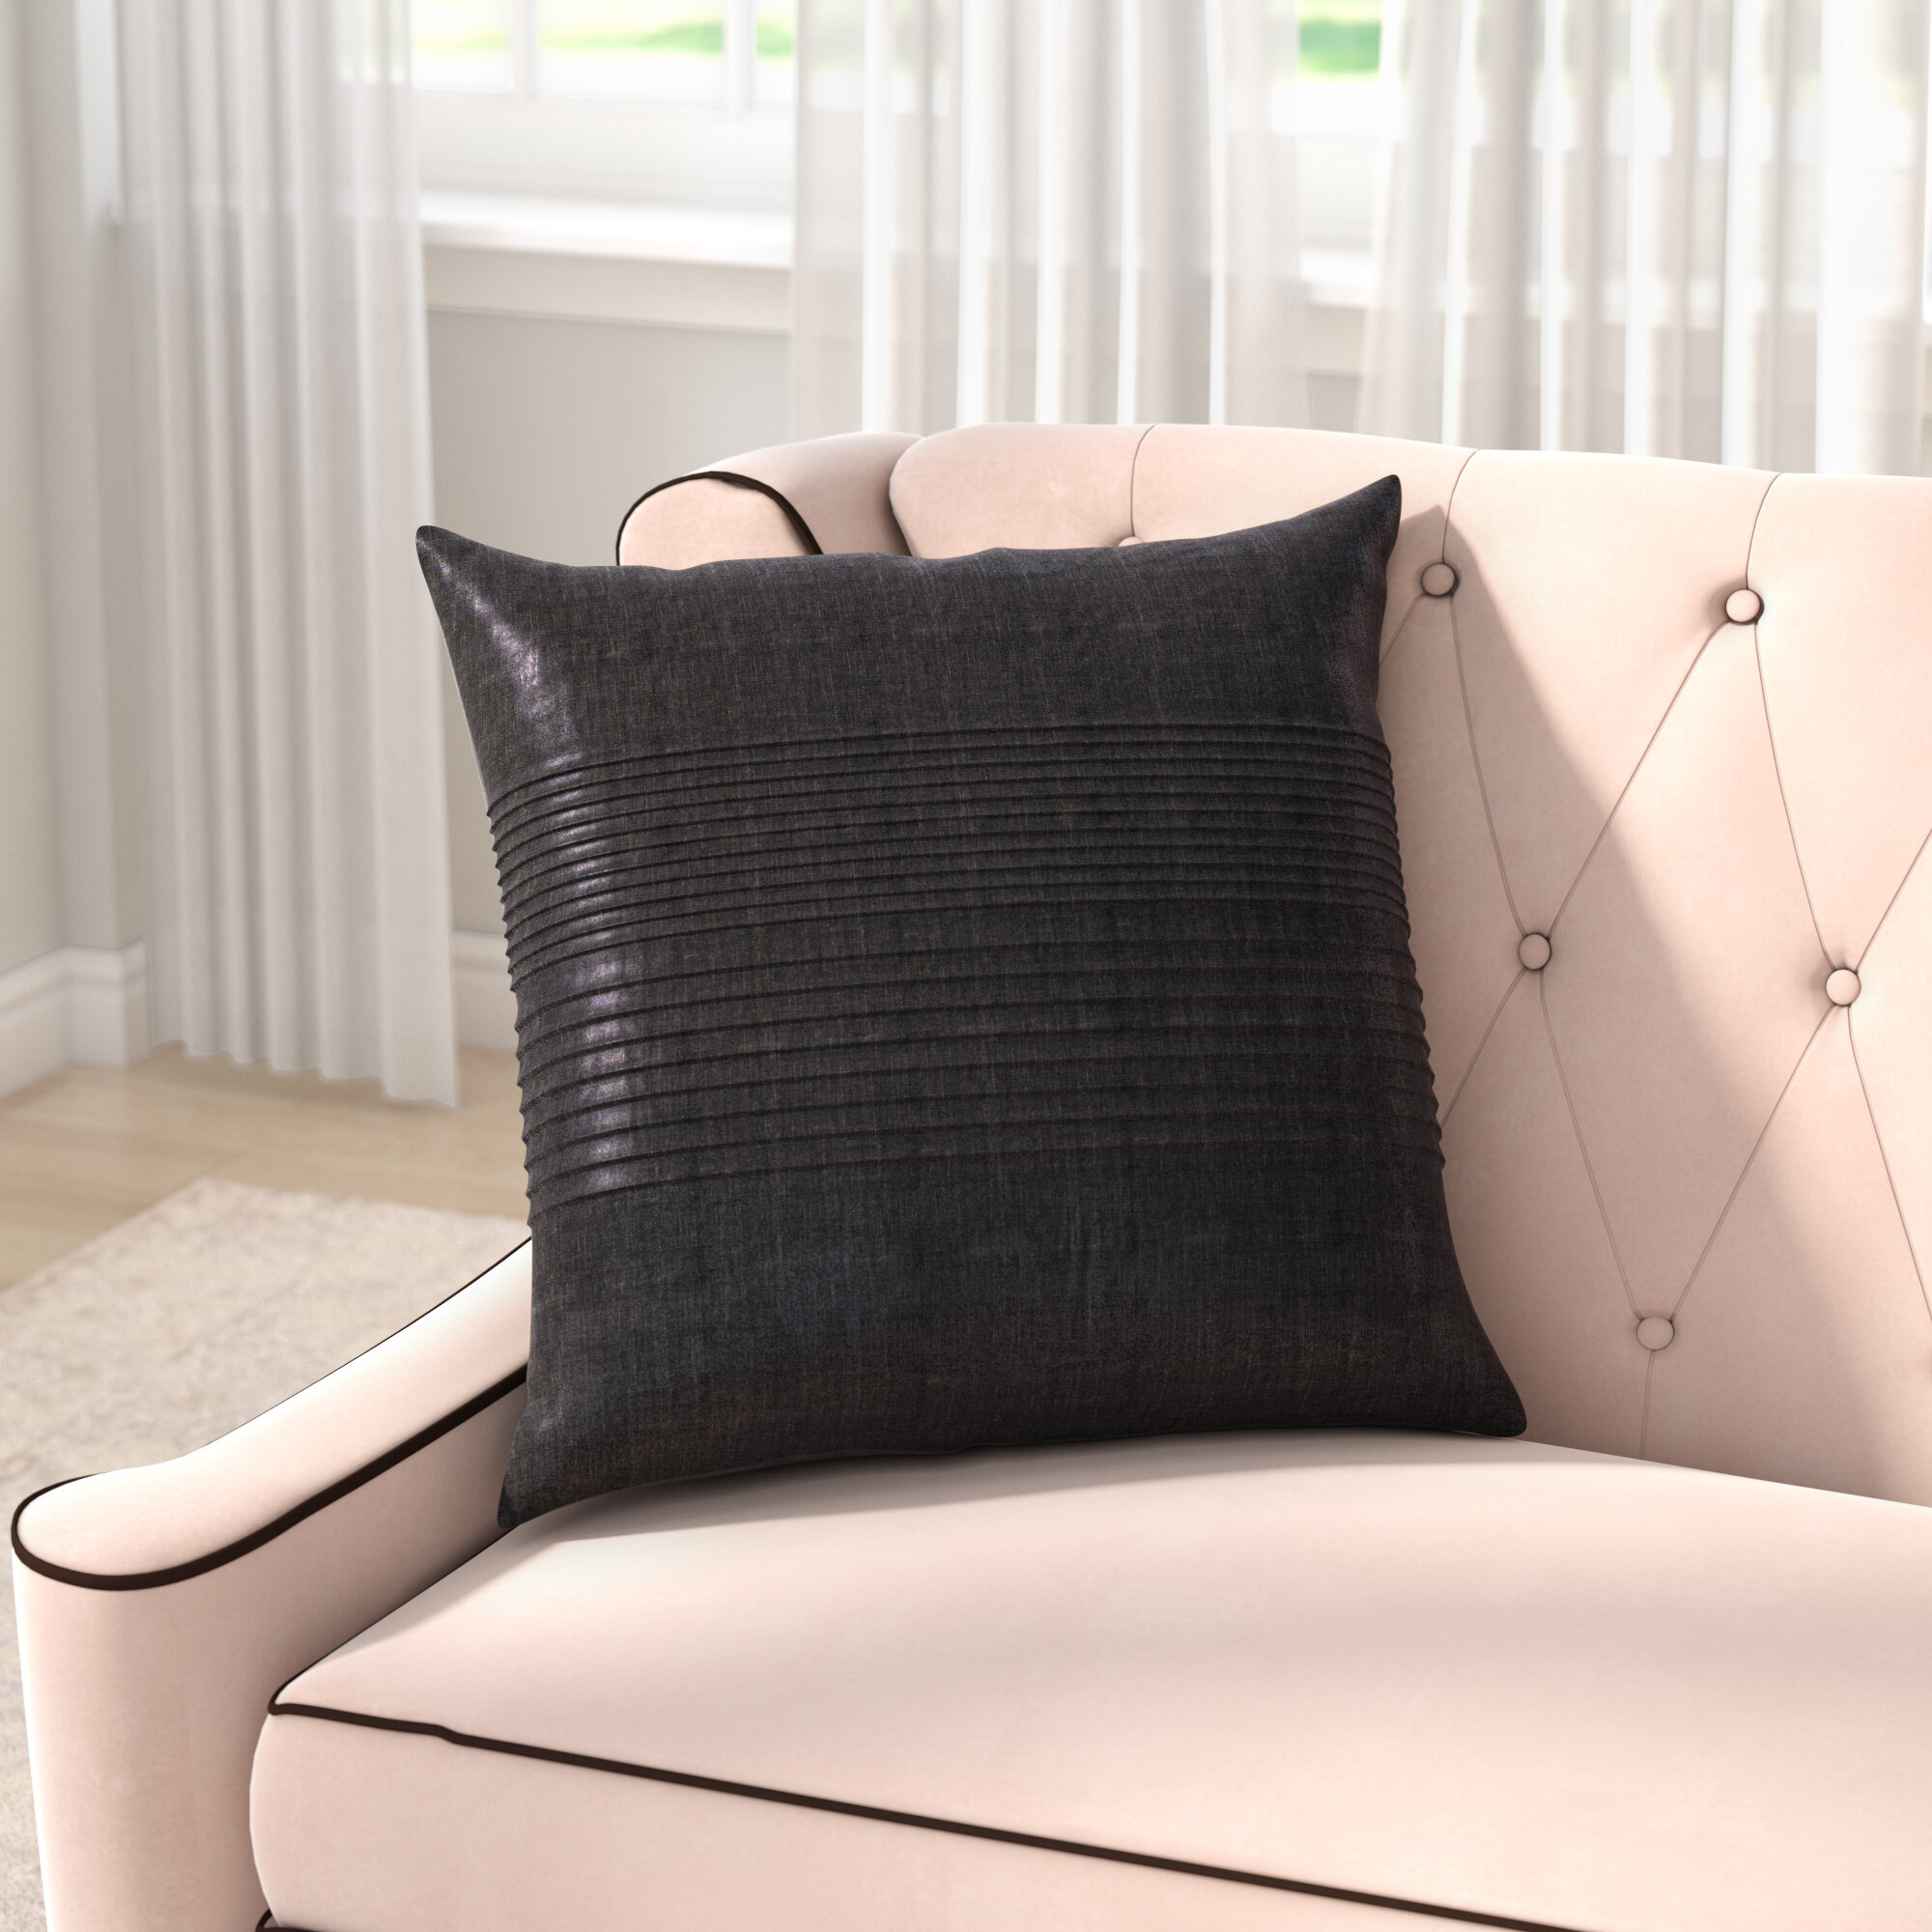 Willa Arlo Interiors Arber Pleated Throw Pillow Cover & Reviews